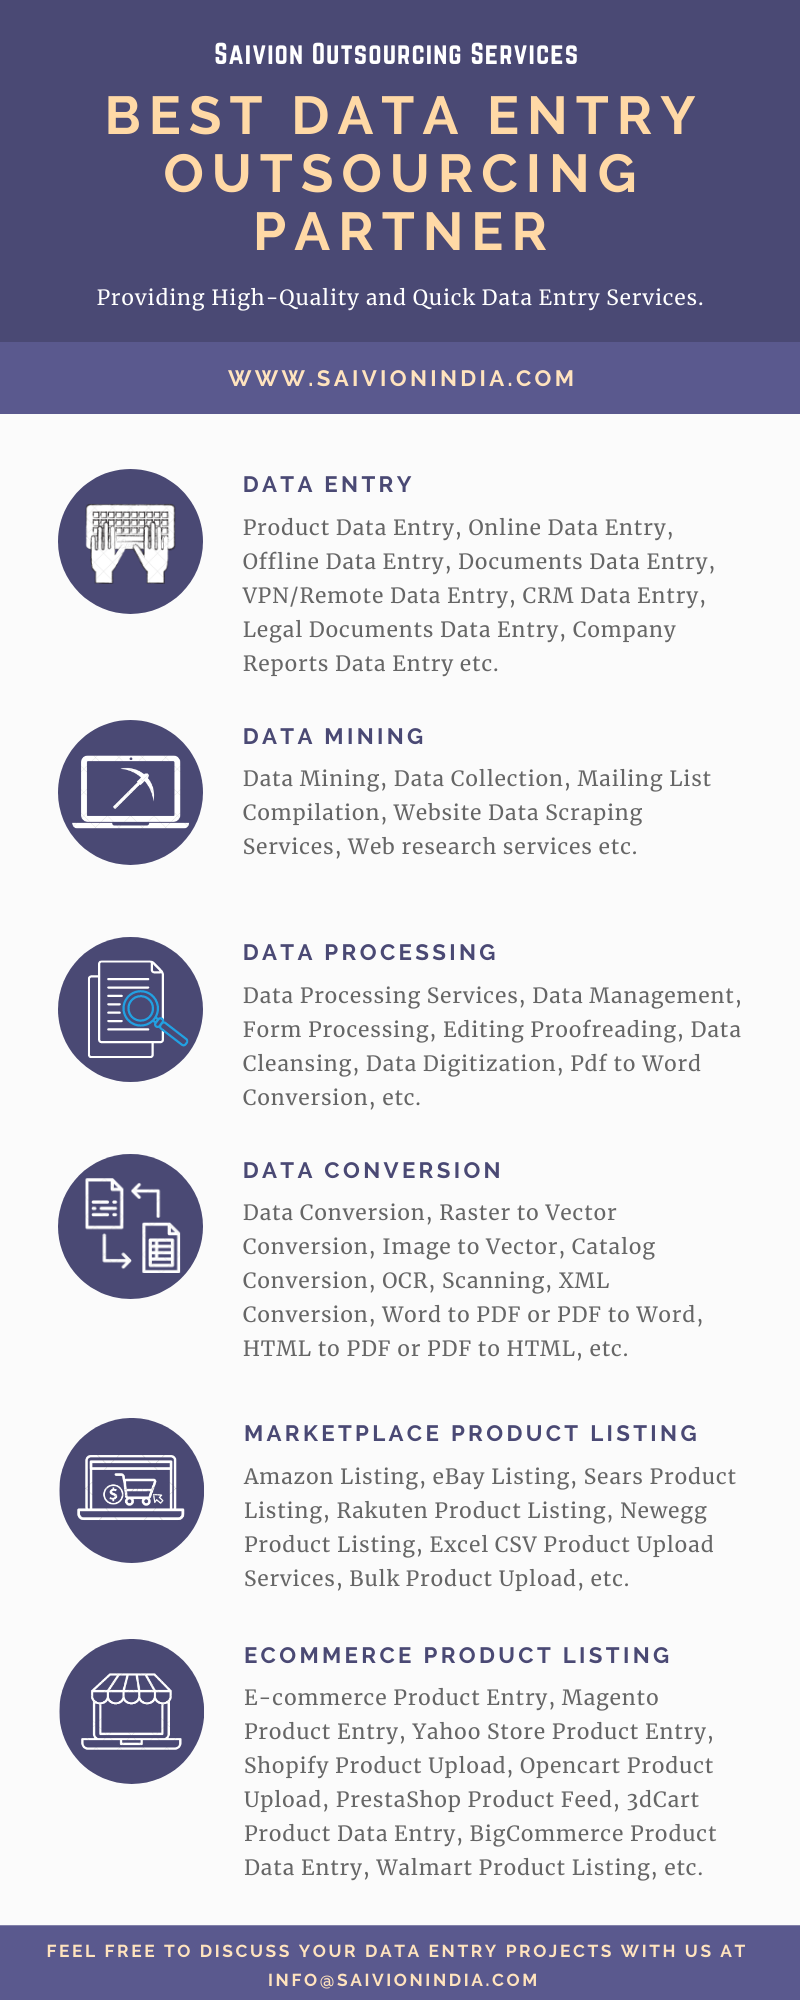 Saivion India Your Best Data Entry Outsourcing Partner In 2020 Outsourcing Data Entry Strategic Goals